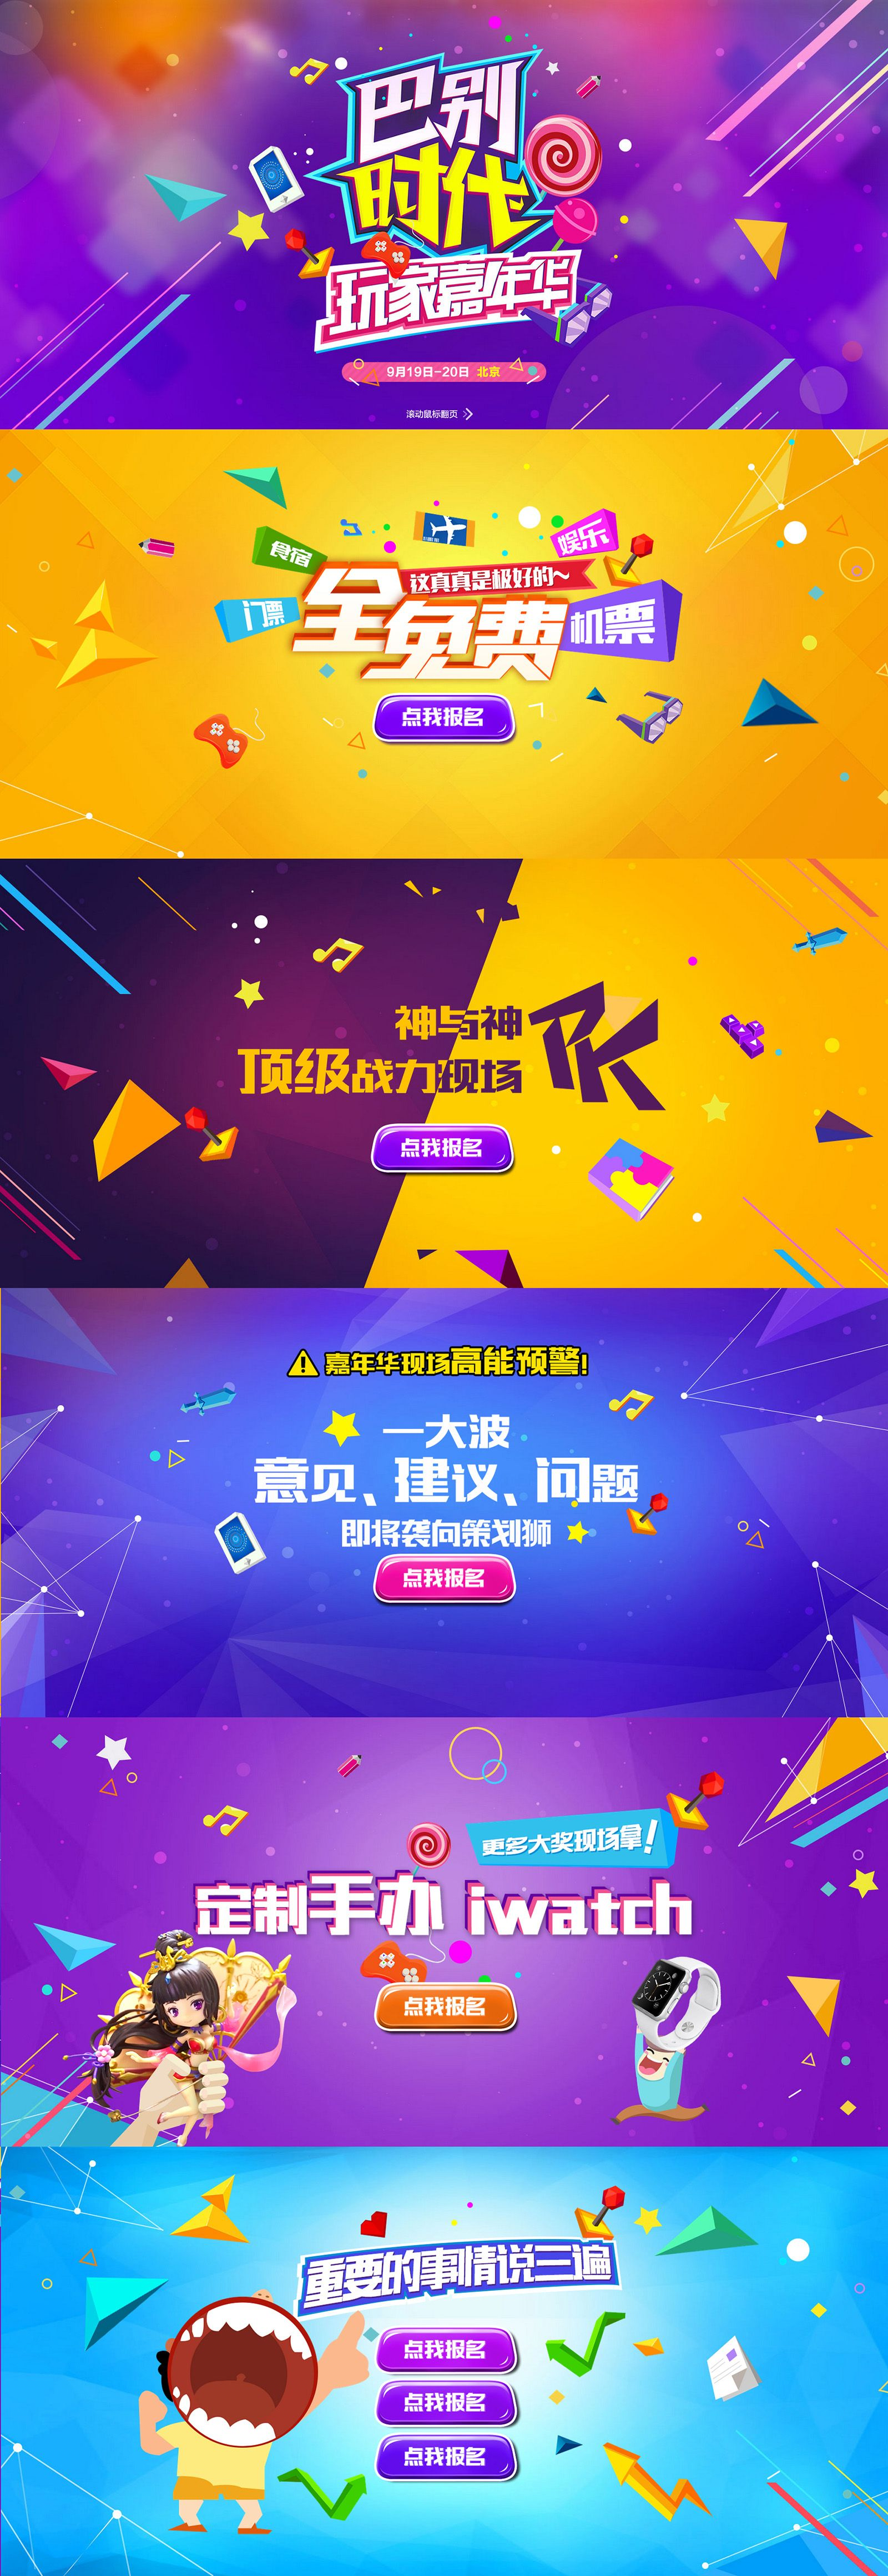 Player Carnival Site High Energy Early Warning Sign Up Interface Design Chinese Web Design Web Banner Design Banner Ads Design Banner Design